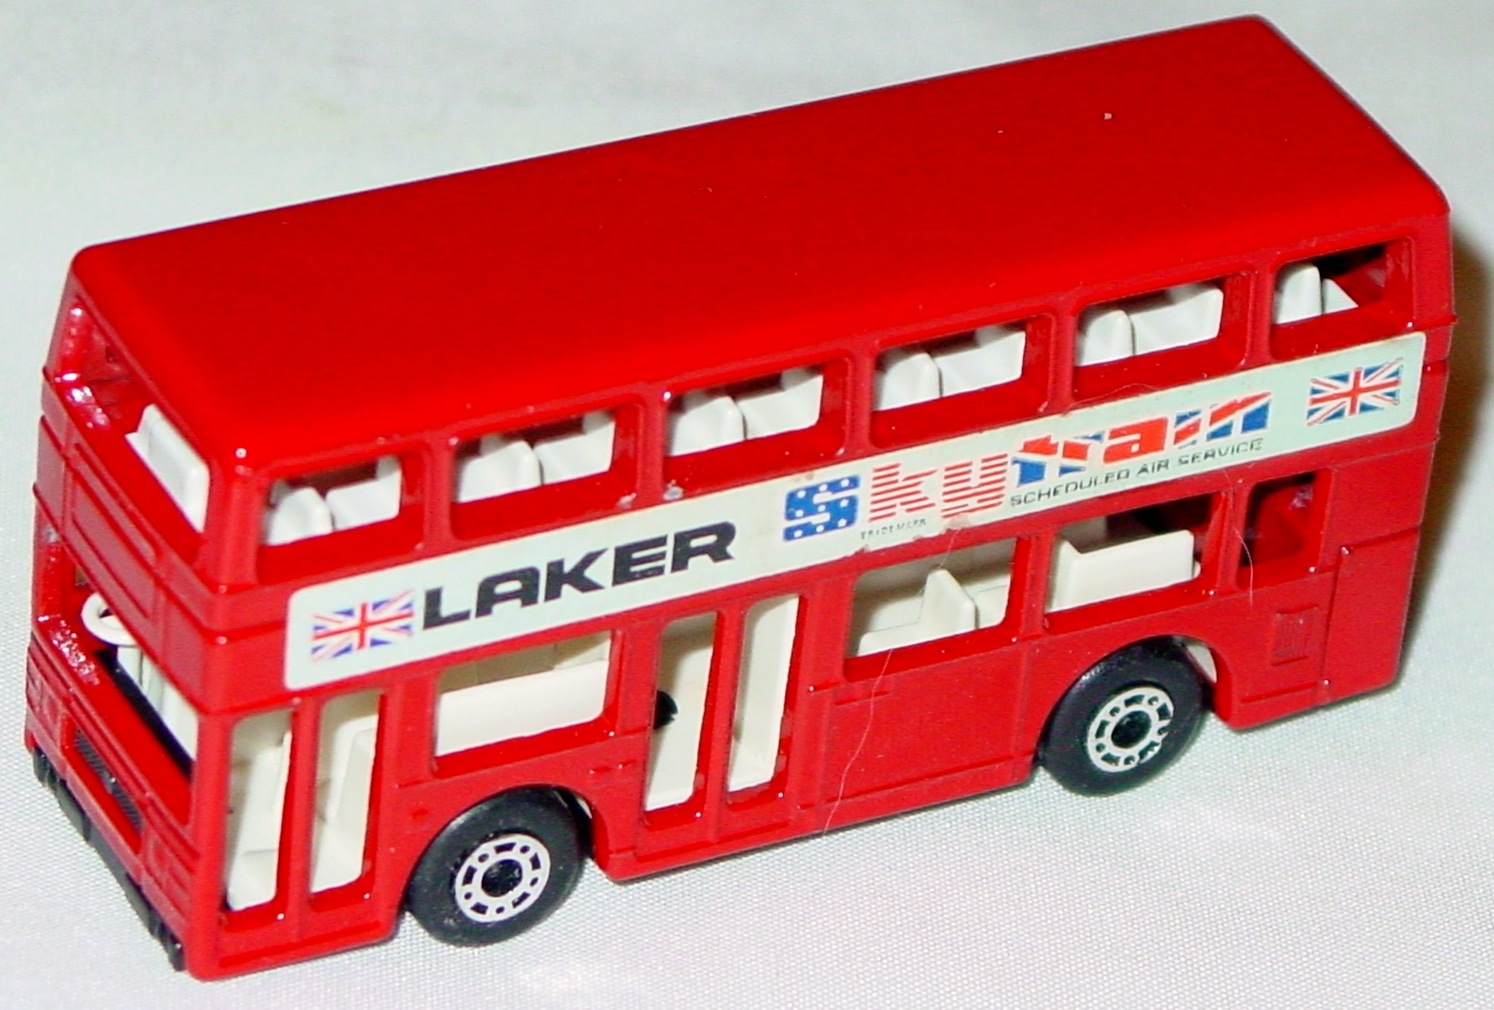 Lesney SuperFast 17 C 2 - Titan Bus Red Laker 1 decal 97%